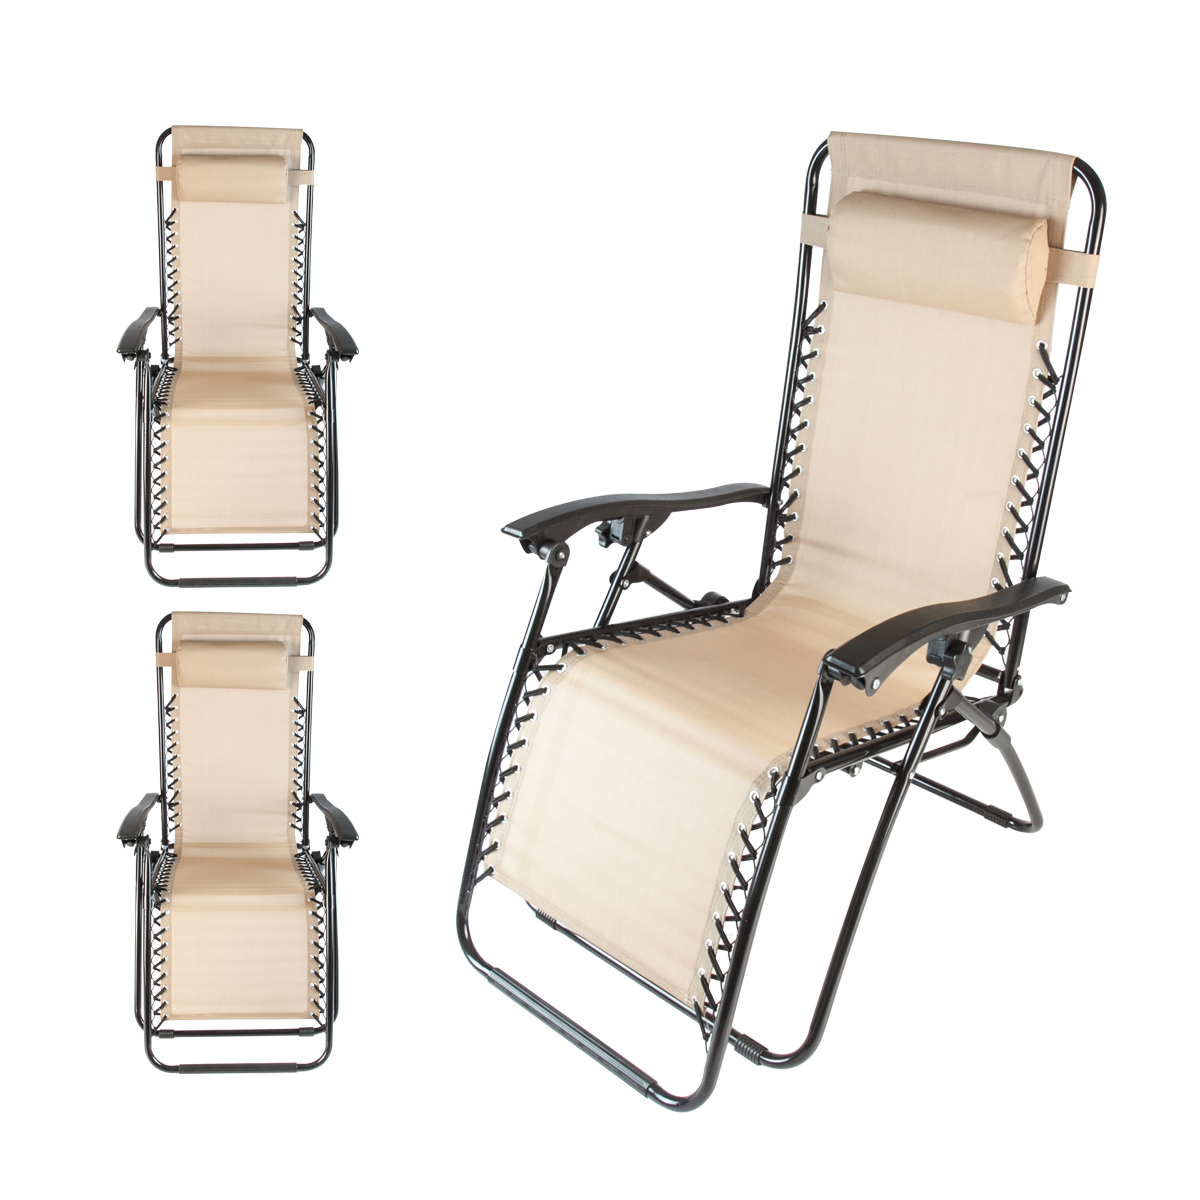 2 Zero Gravity Folding Lounge Chairs Recliner Outdoor Pool